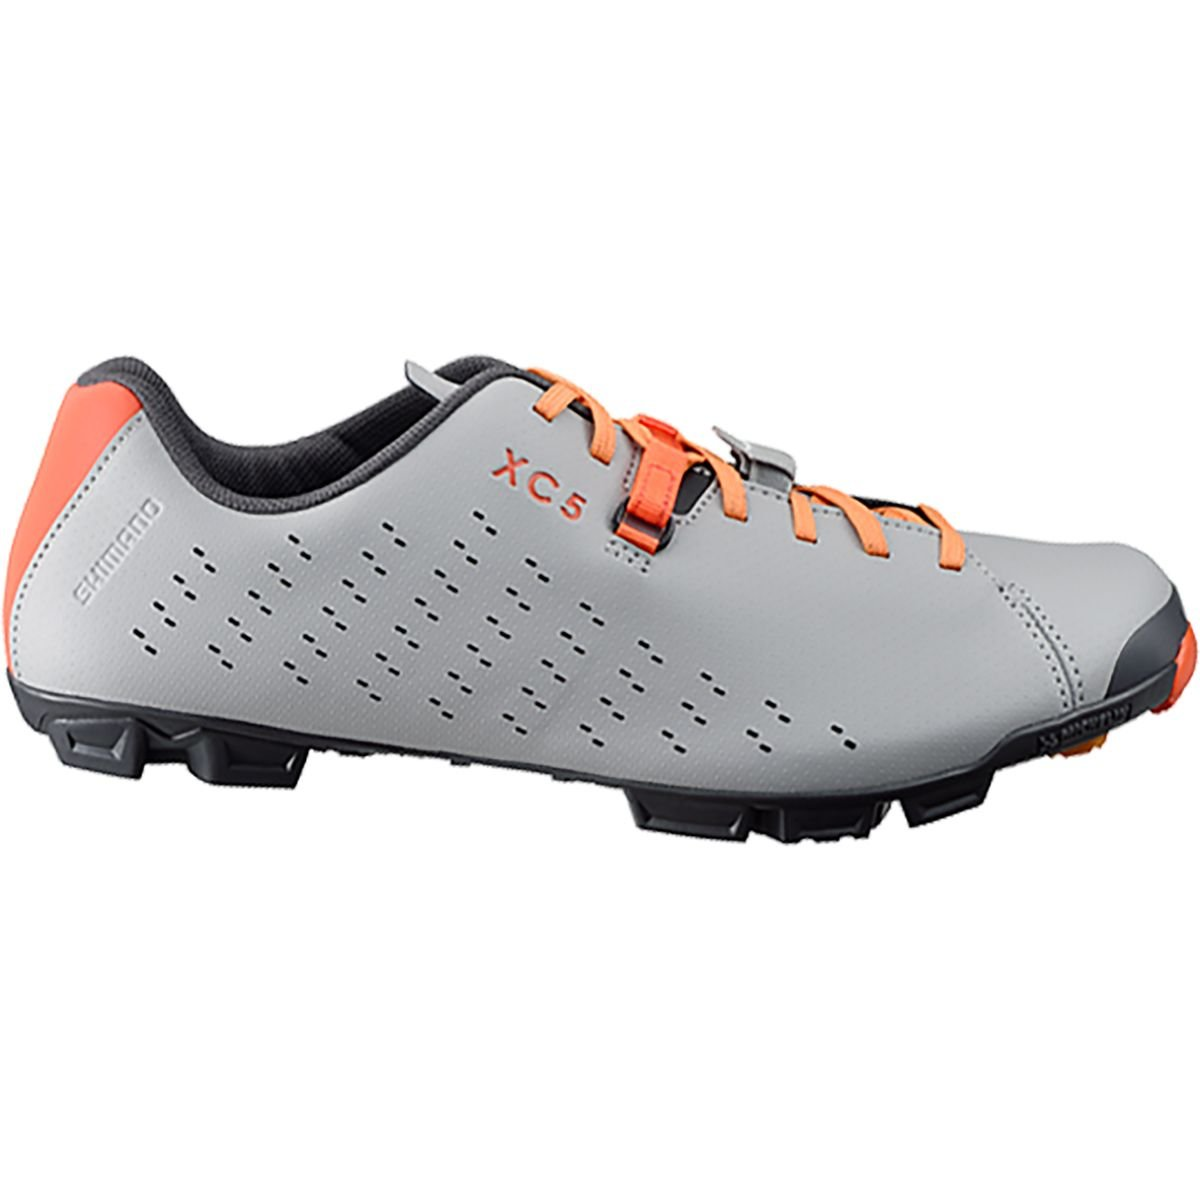 SHIMANO SH-XC5 Mountain Bike Shoe - Men's Grey/Orange; 38 by SHIMANO